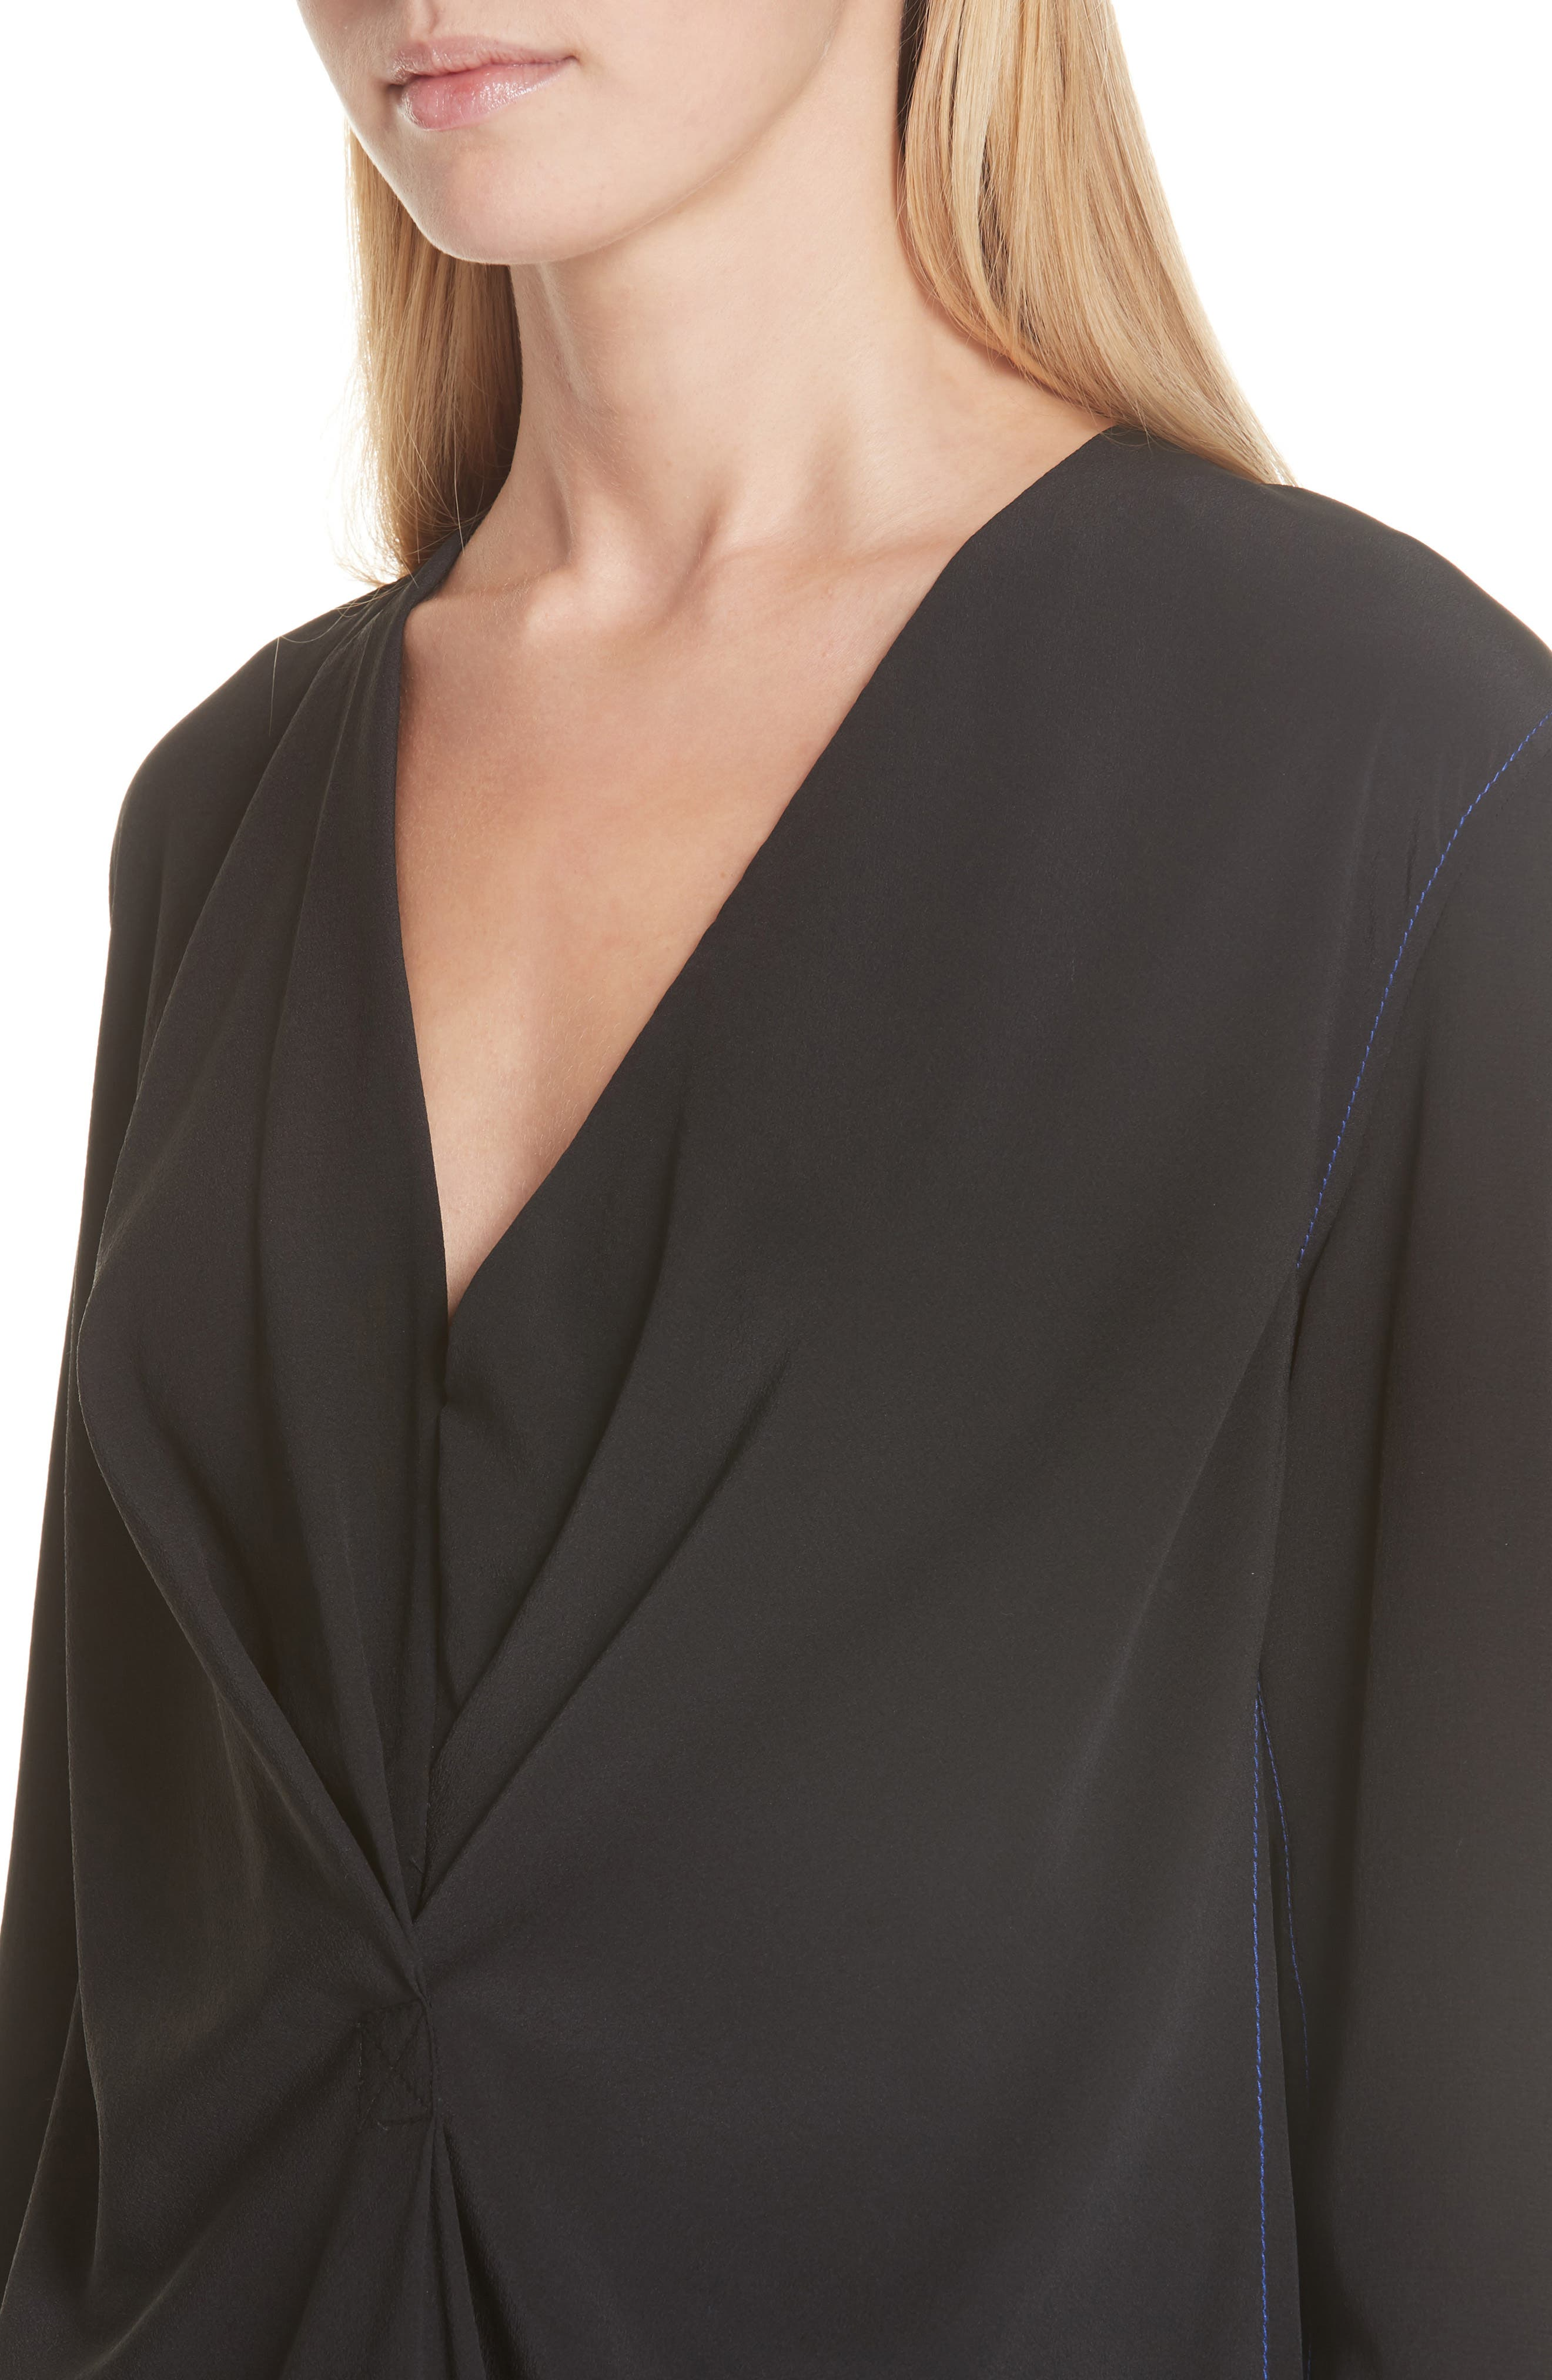 Shields Silk Blouse,                             Alternate thumbnail 4, color,                             BLACK